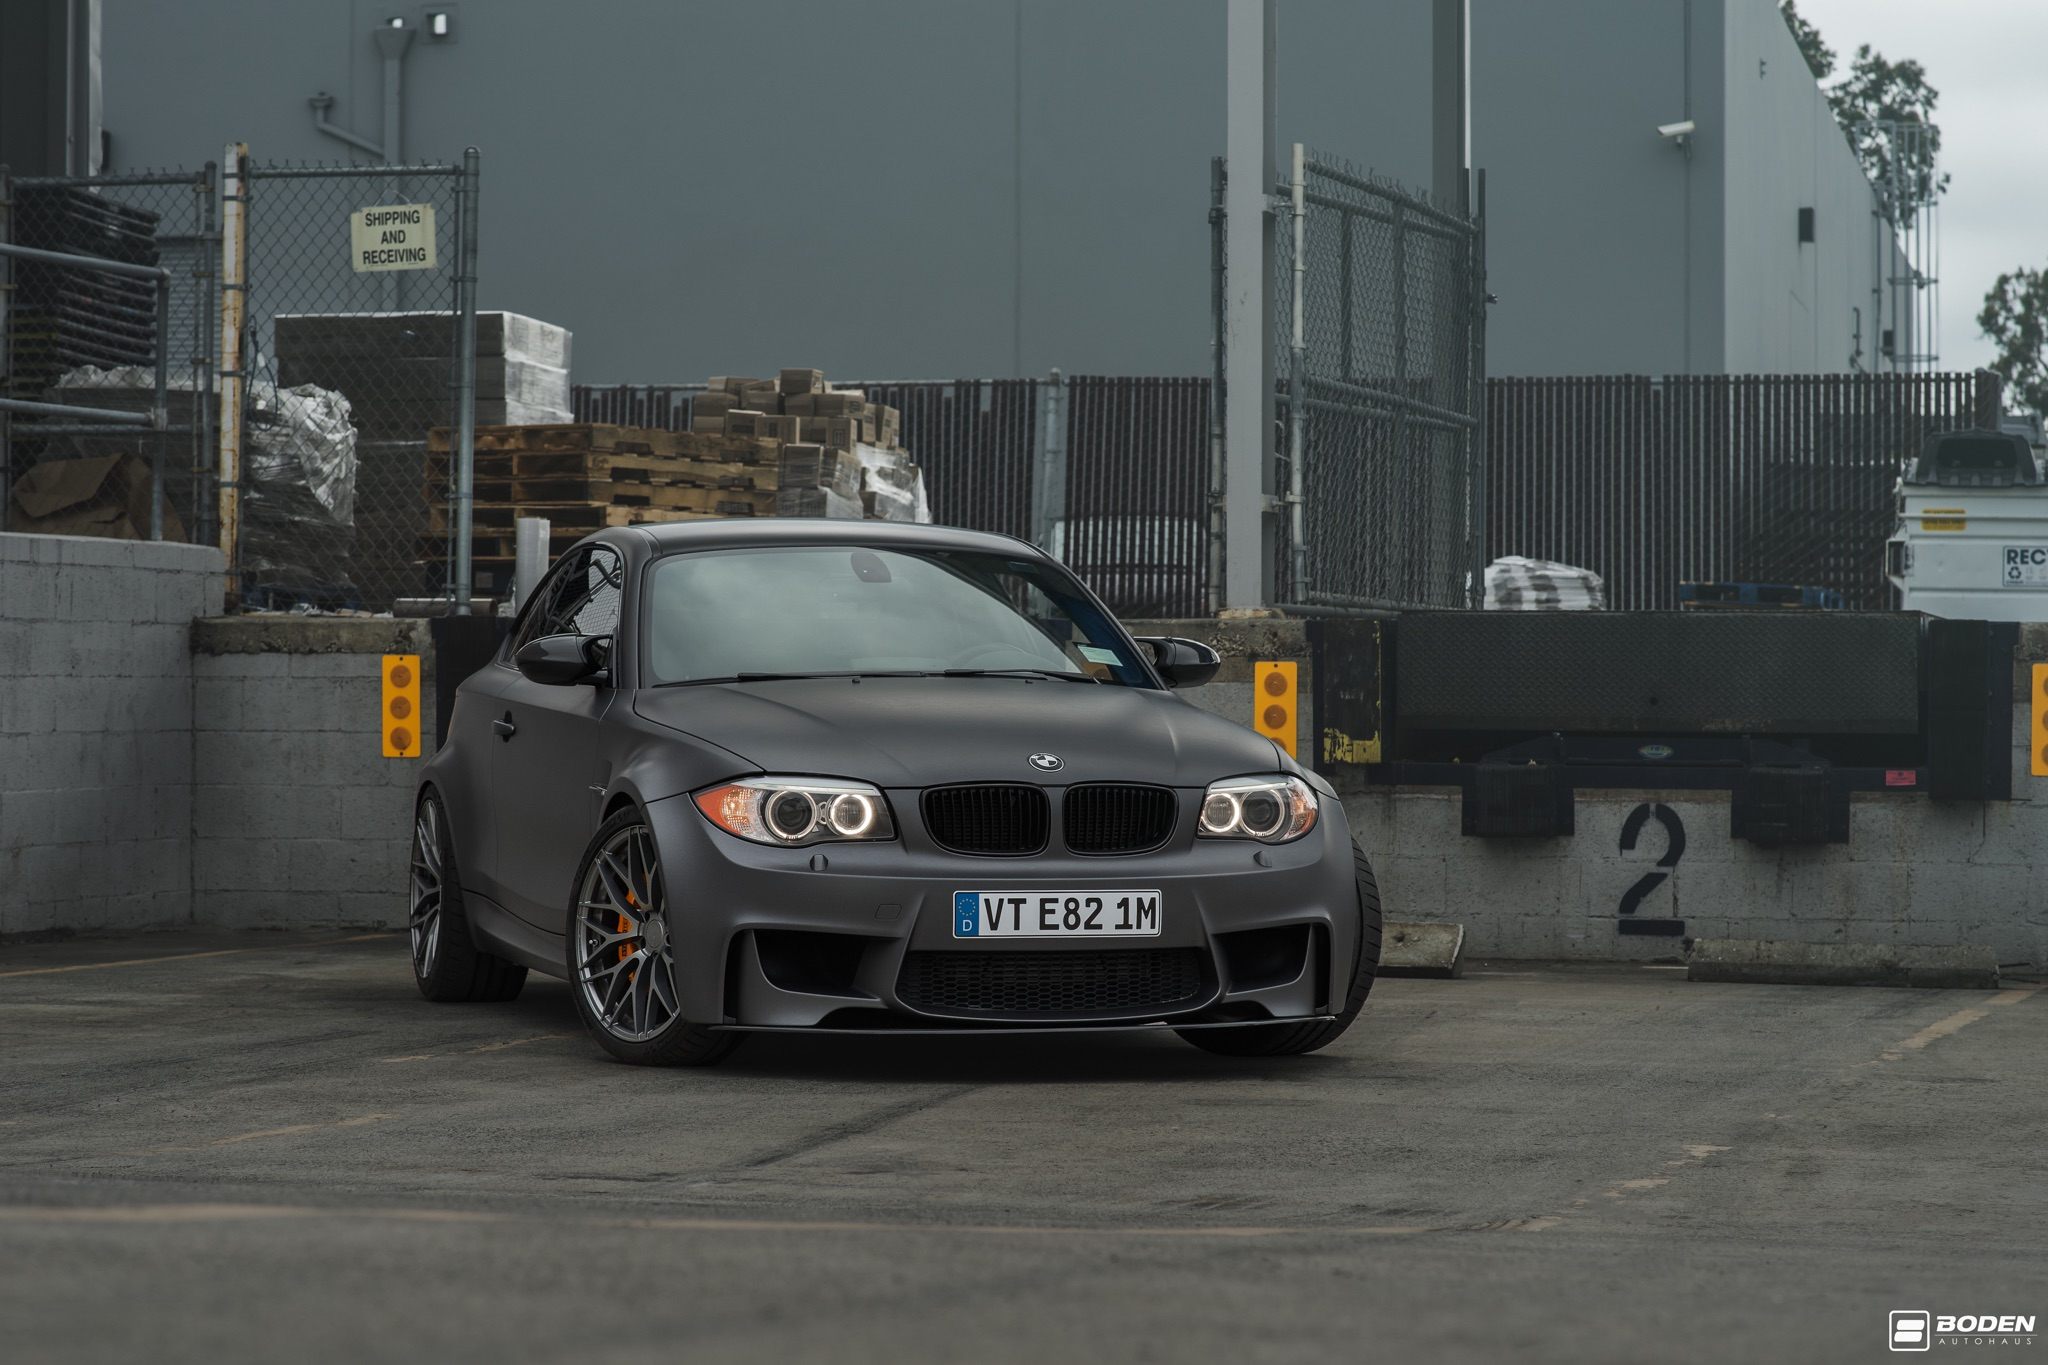 BMW E82 1M Grey Gunmetal ZF01